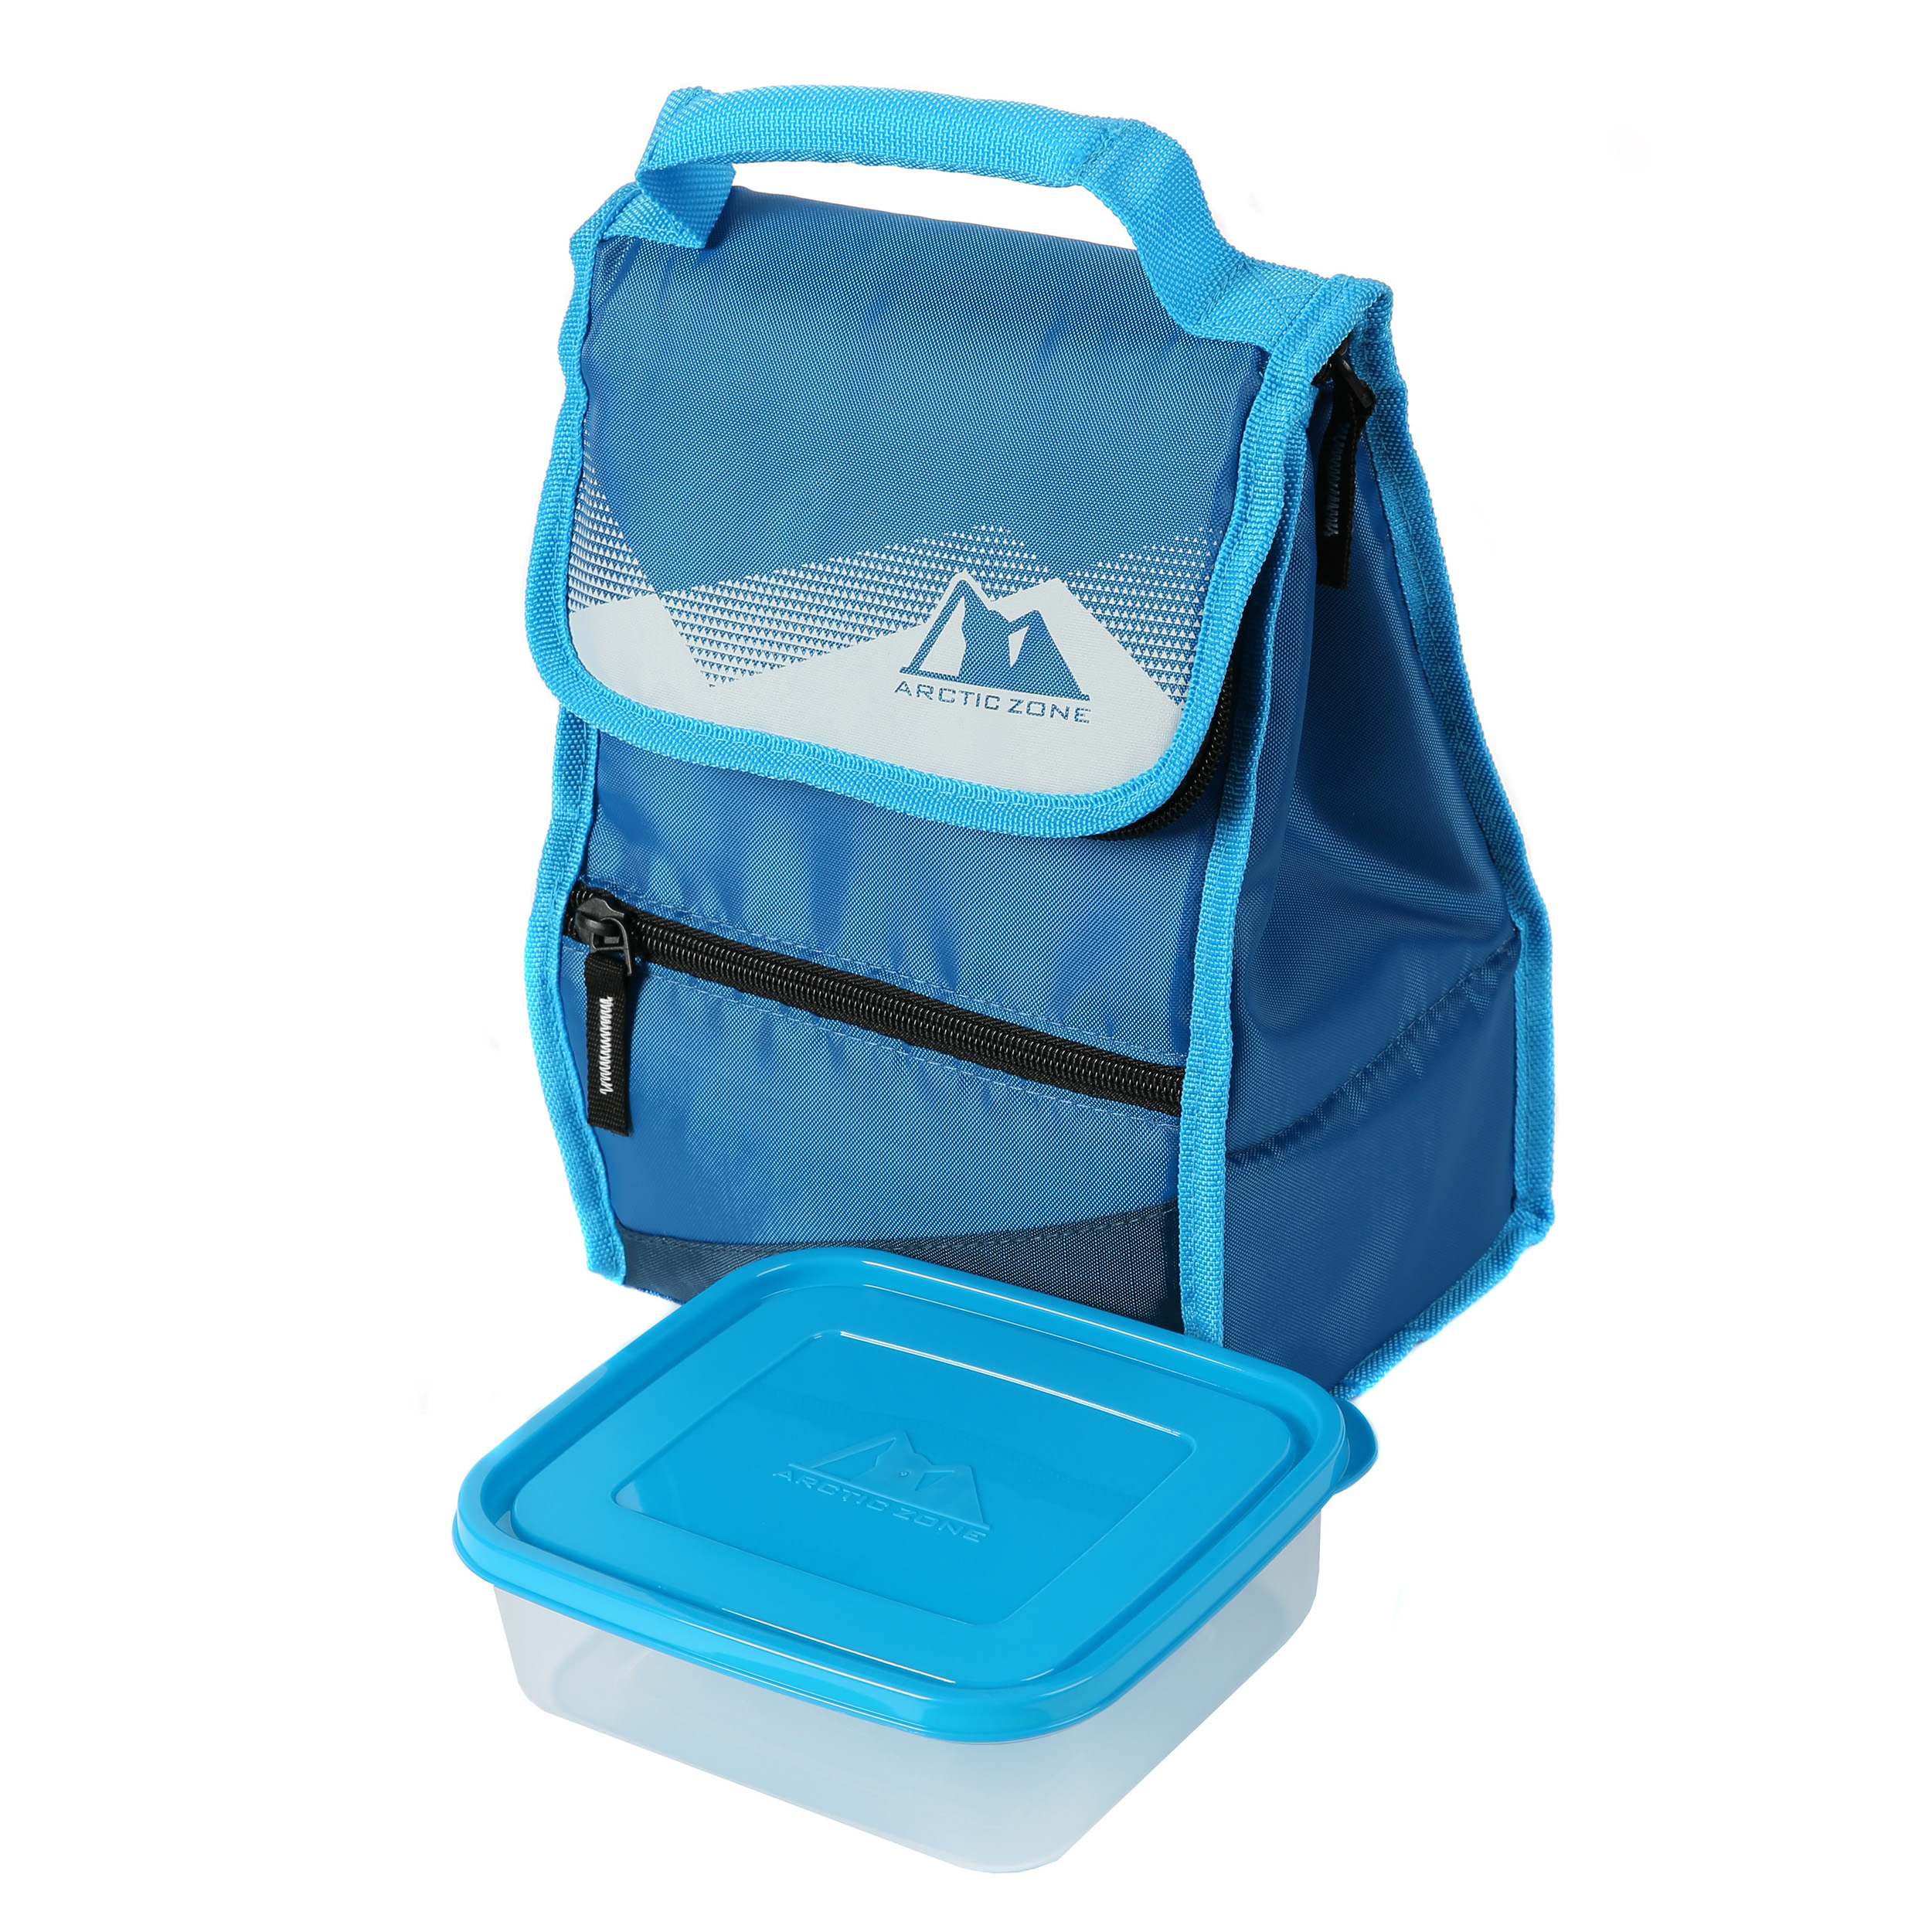 Arctic Zone Hi-Top Black Power Pack Lunch Bag, 1 Each